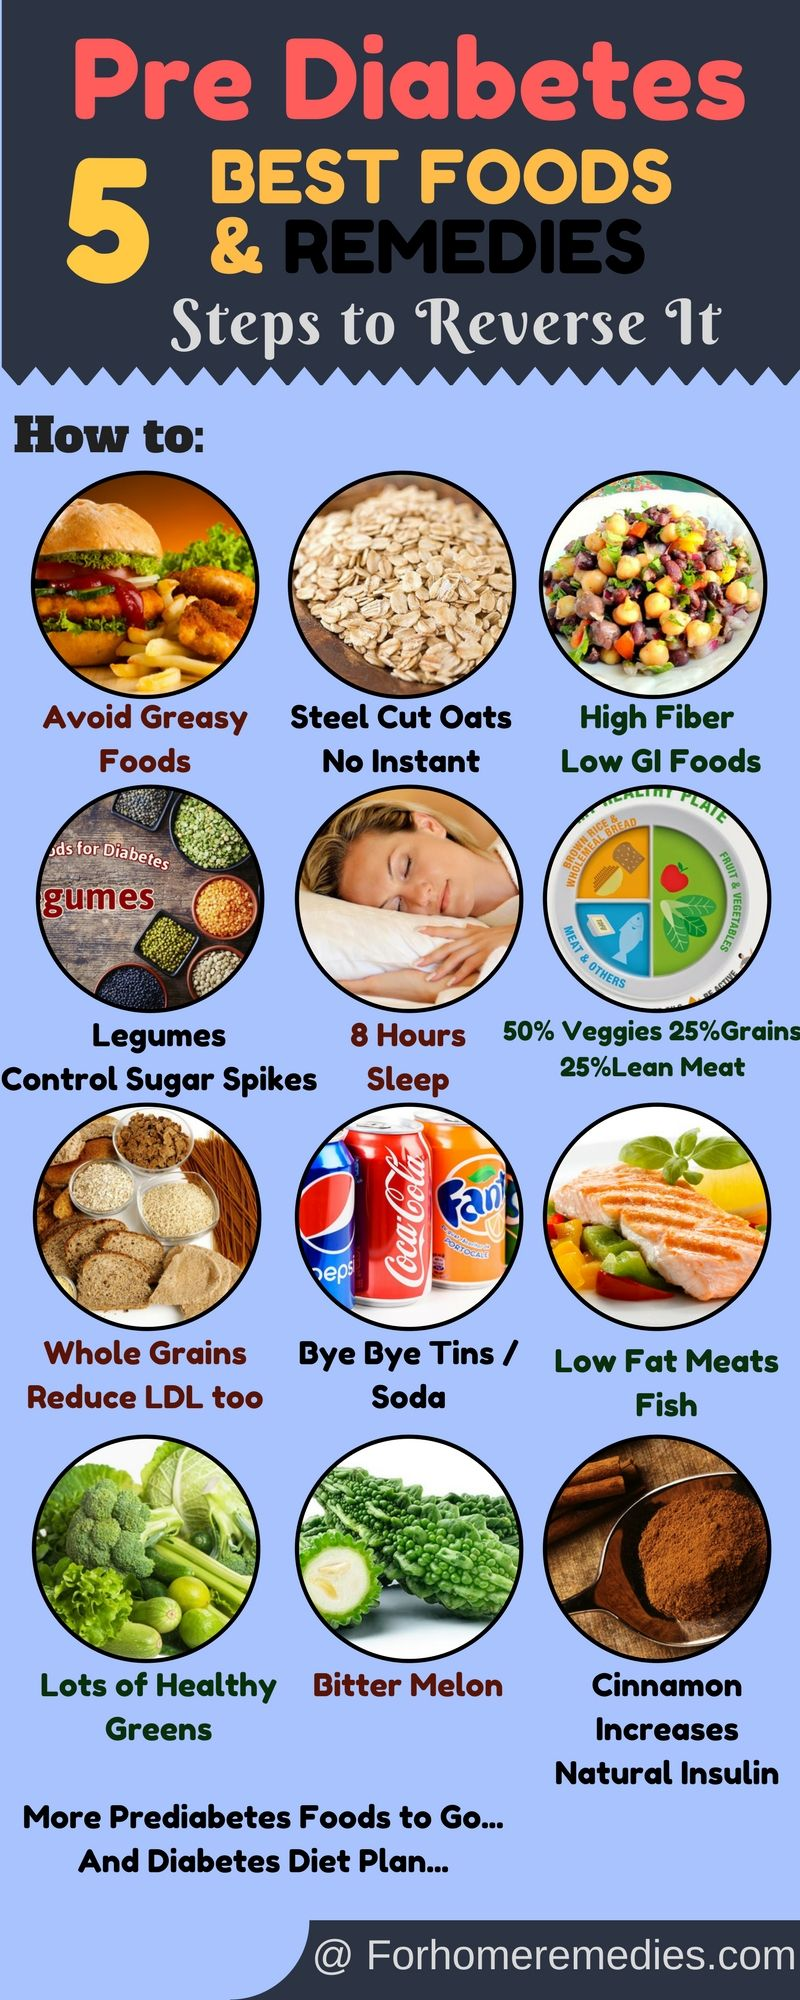 Best foods and diet plan for pre diabetes and diabetes home remedies best foods and diet plan for pre diabetes and diabetes home remedies check for the list of best foods for pre diabetes 2pplements 3ods to avoid 4 forumfinder Image collections